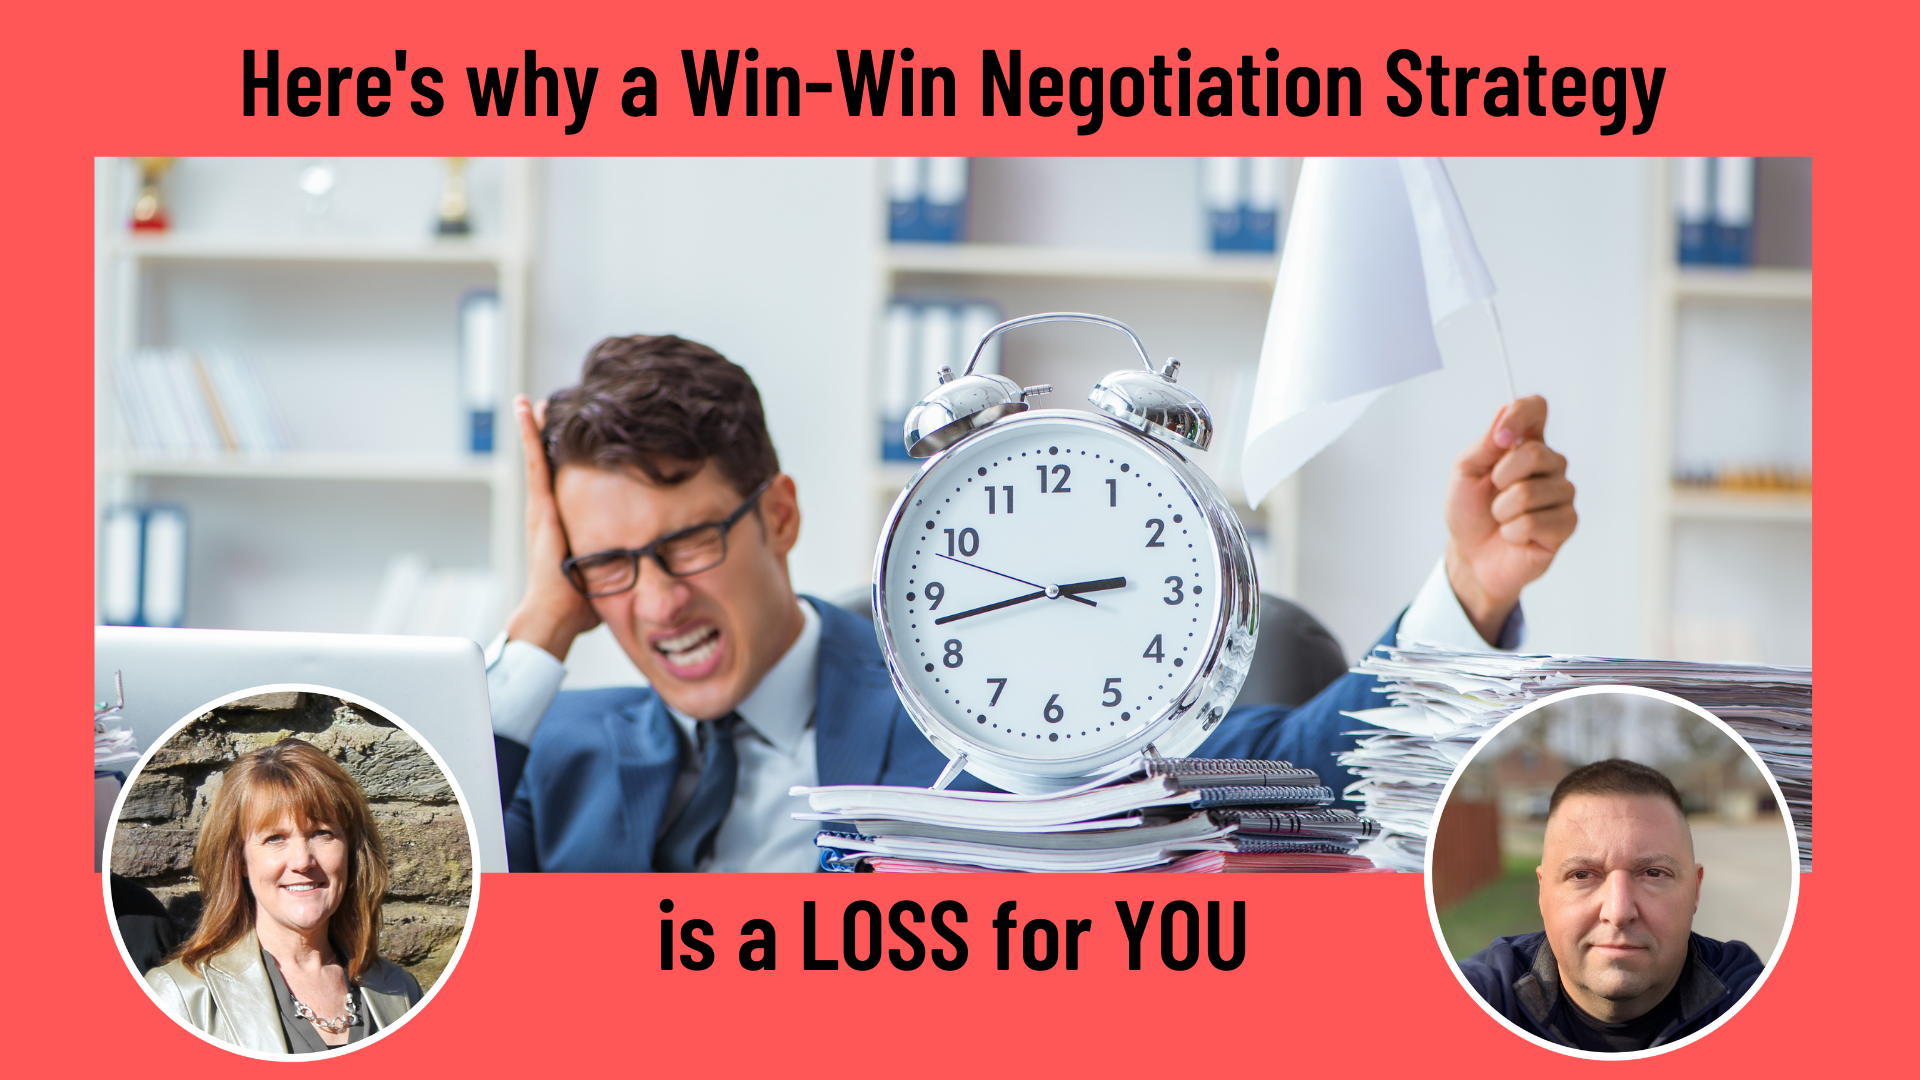 Here's why a Win-Win Negotiation Strategy is a LOSS for You